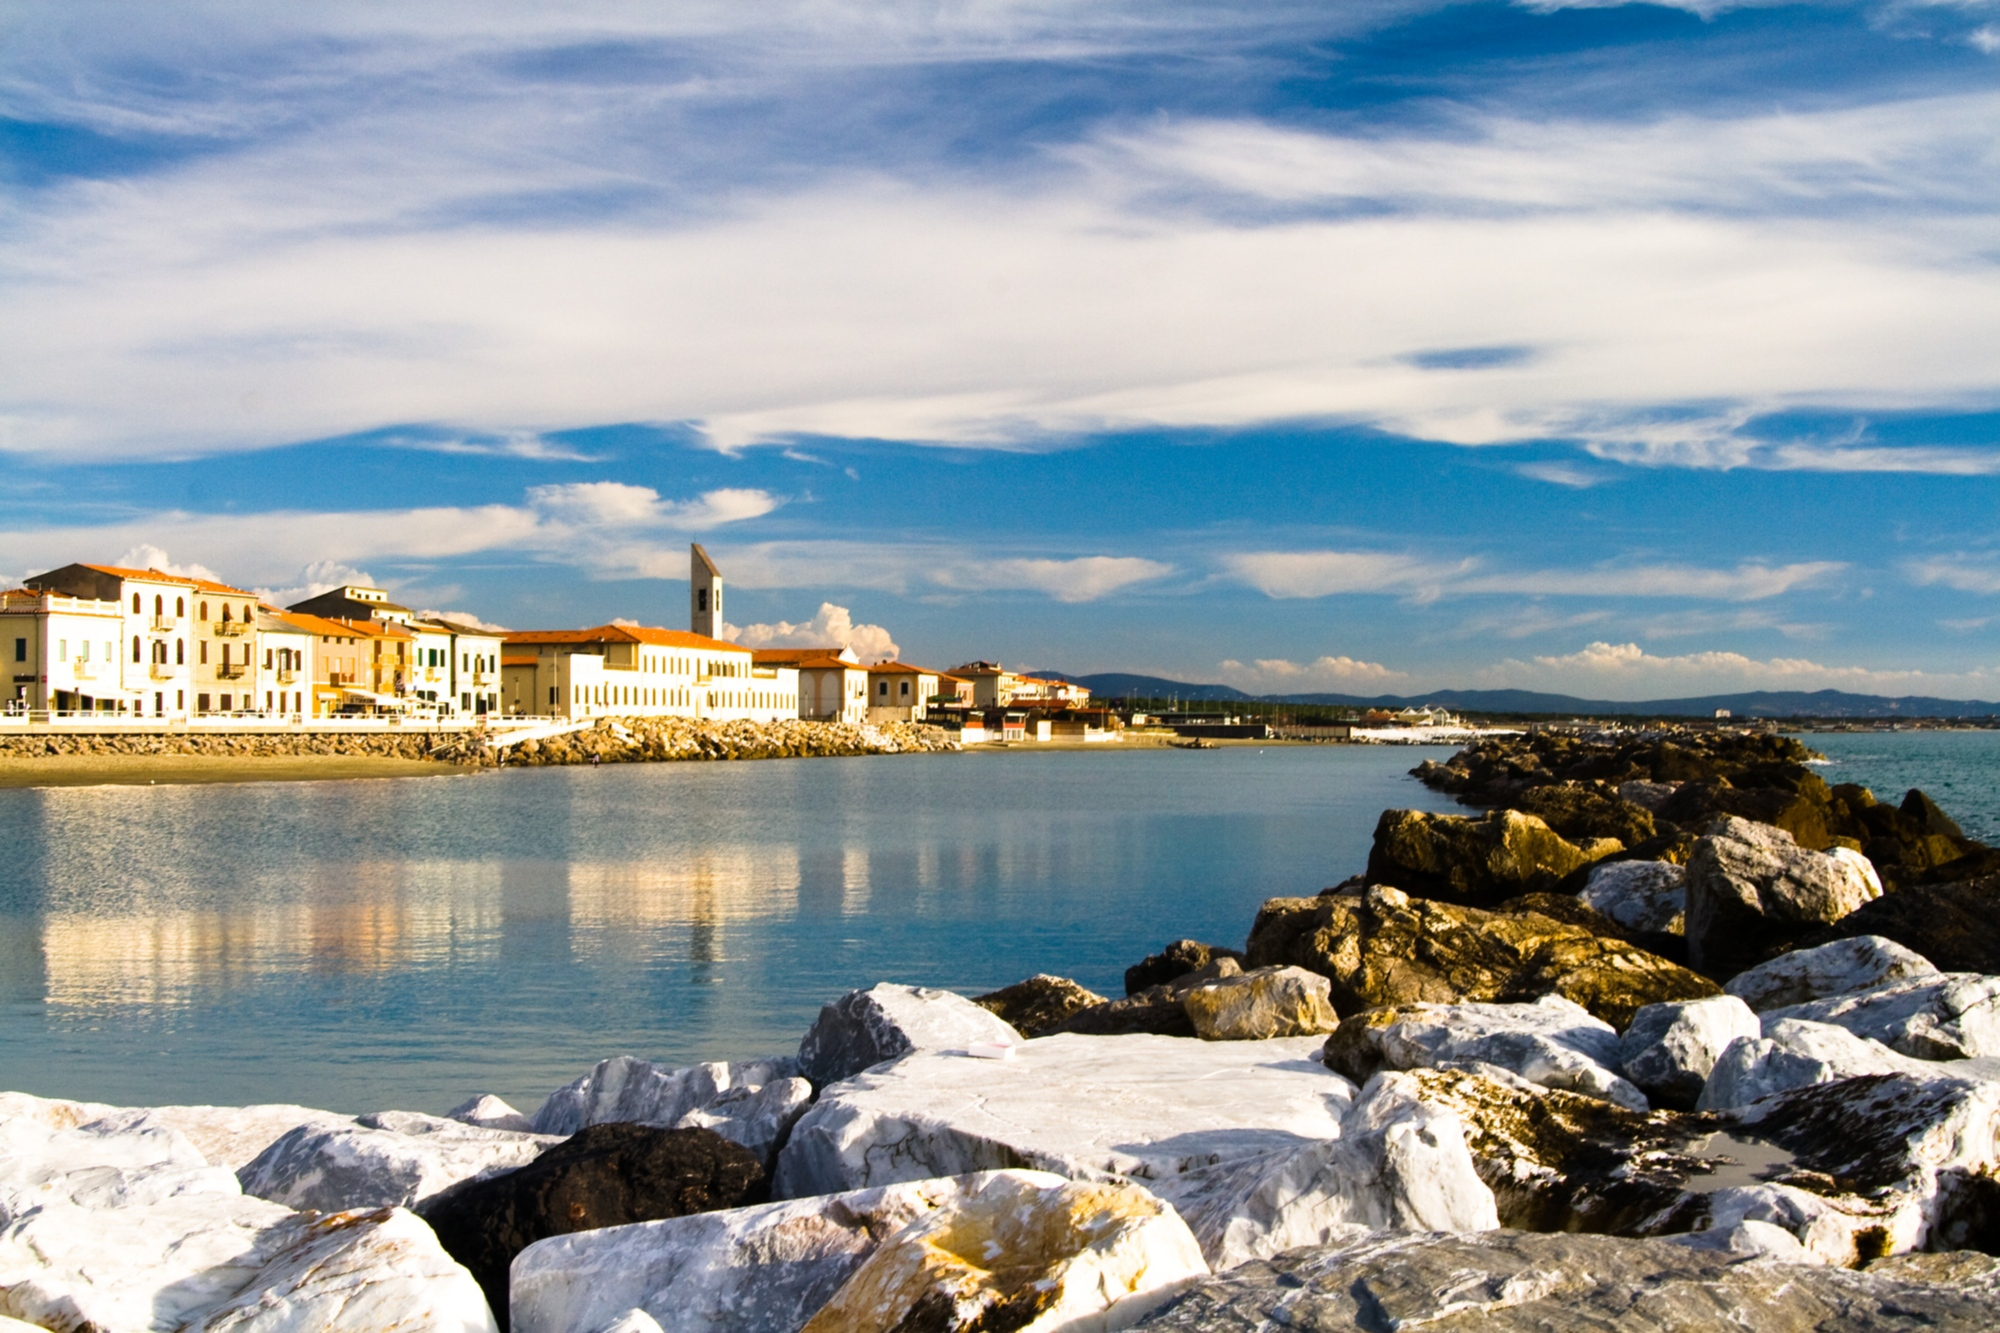 Bagni Marina Di Pisa Marina Di Pisa A Beach Town Not Far From The Leaning